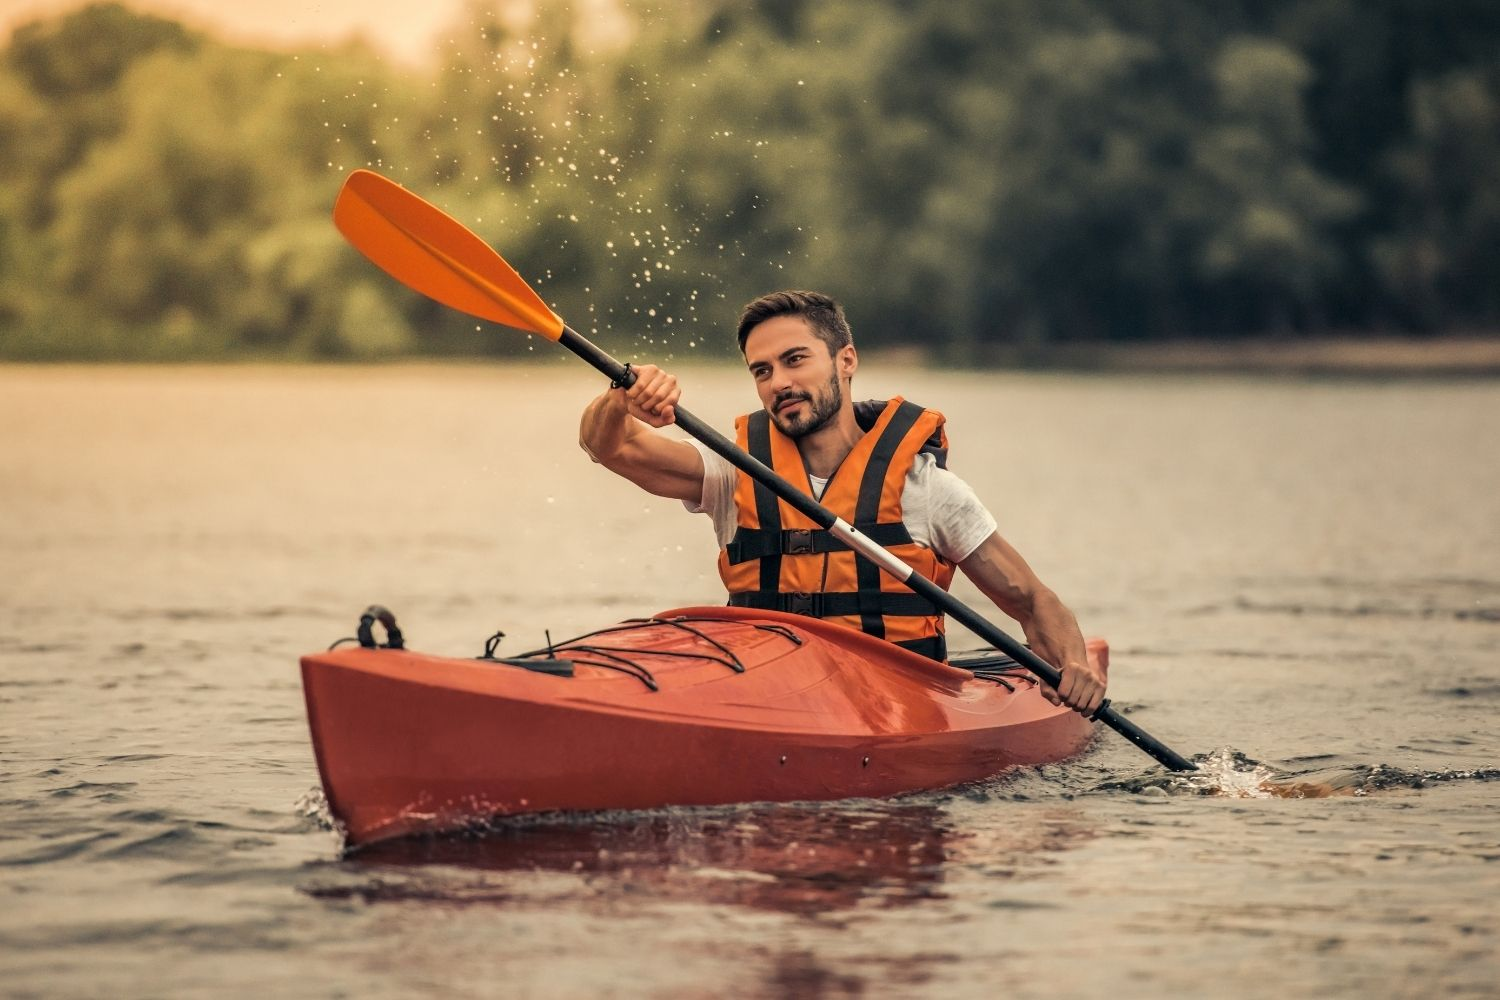 Beginner Kayaking Tips: Getting the Most Out of Your Kayak